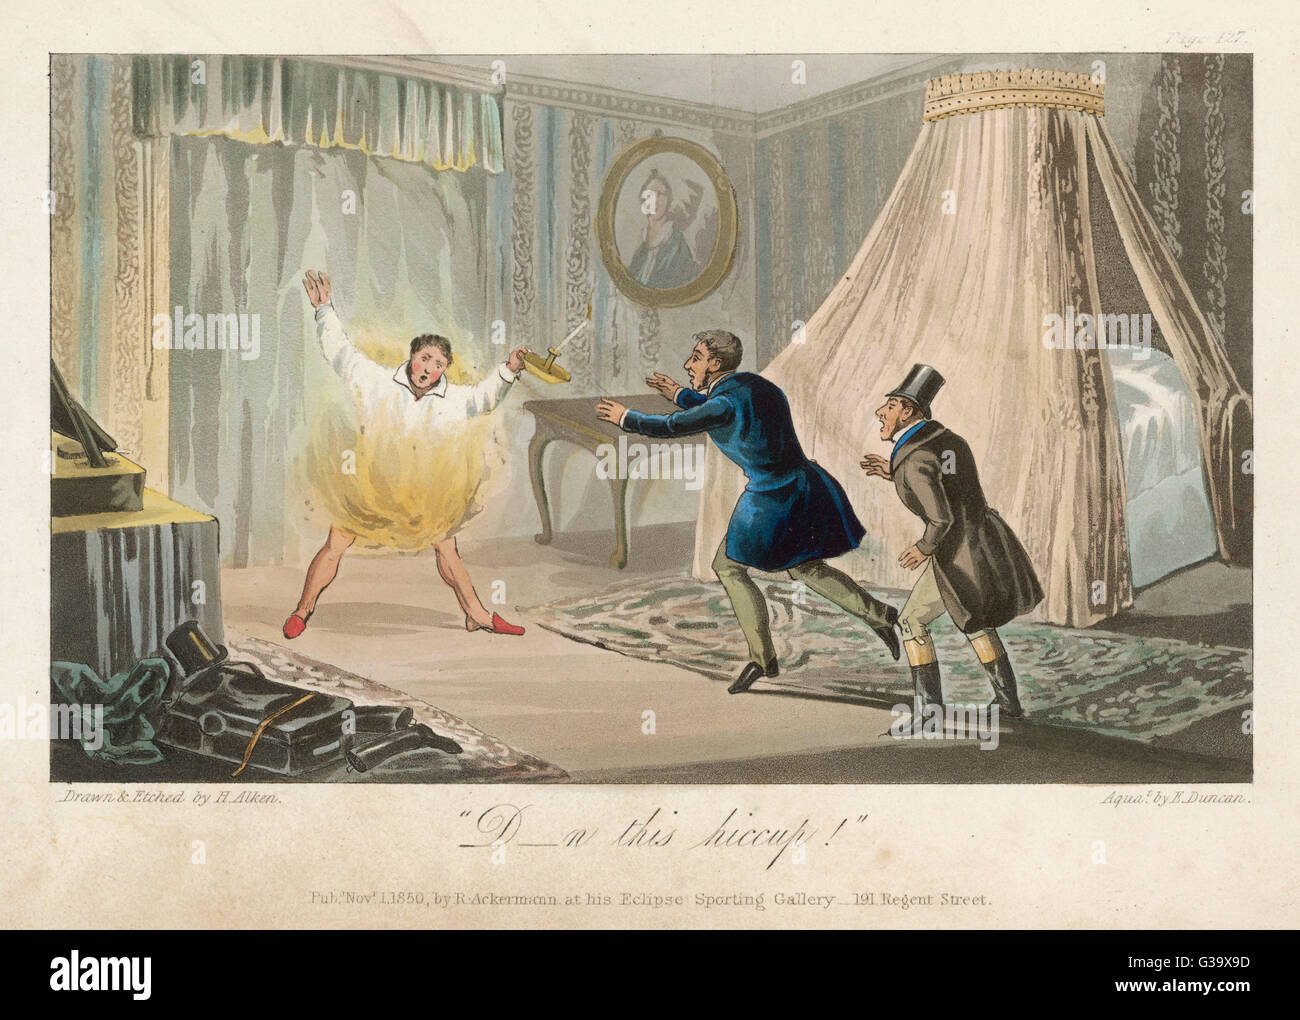 """JOHN MYTTON """"Damn this hiccup!"""" As a final act of folly this  English eccentric sets fire to  - Stock Image"""